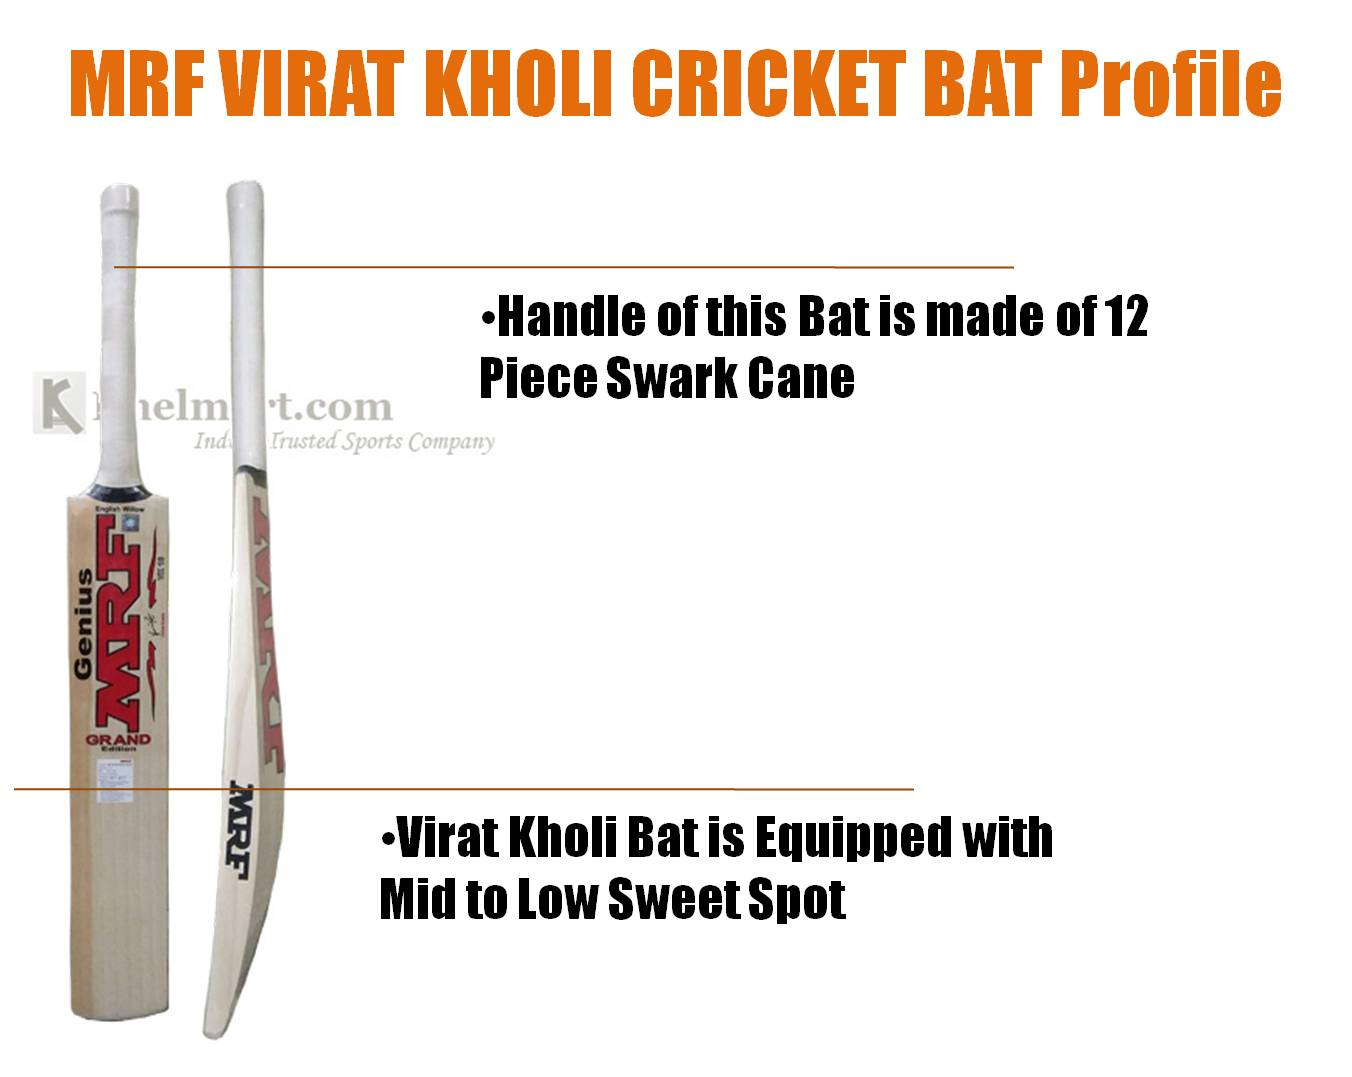 MRF_VIRAT_KHOLI_CRICKET_BAT_PROFILE.jpg